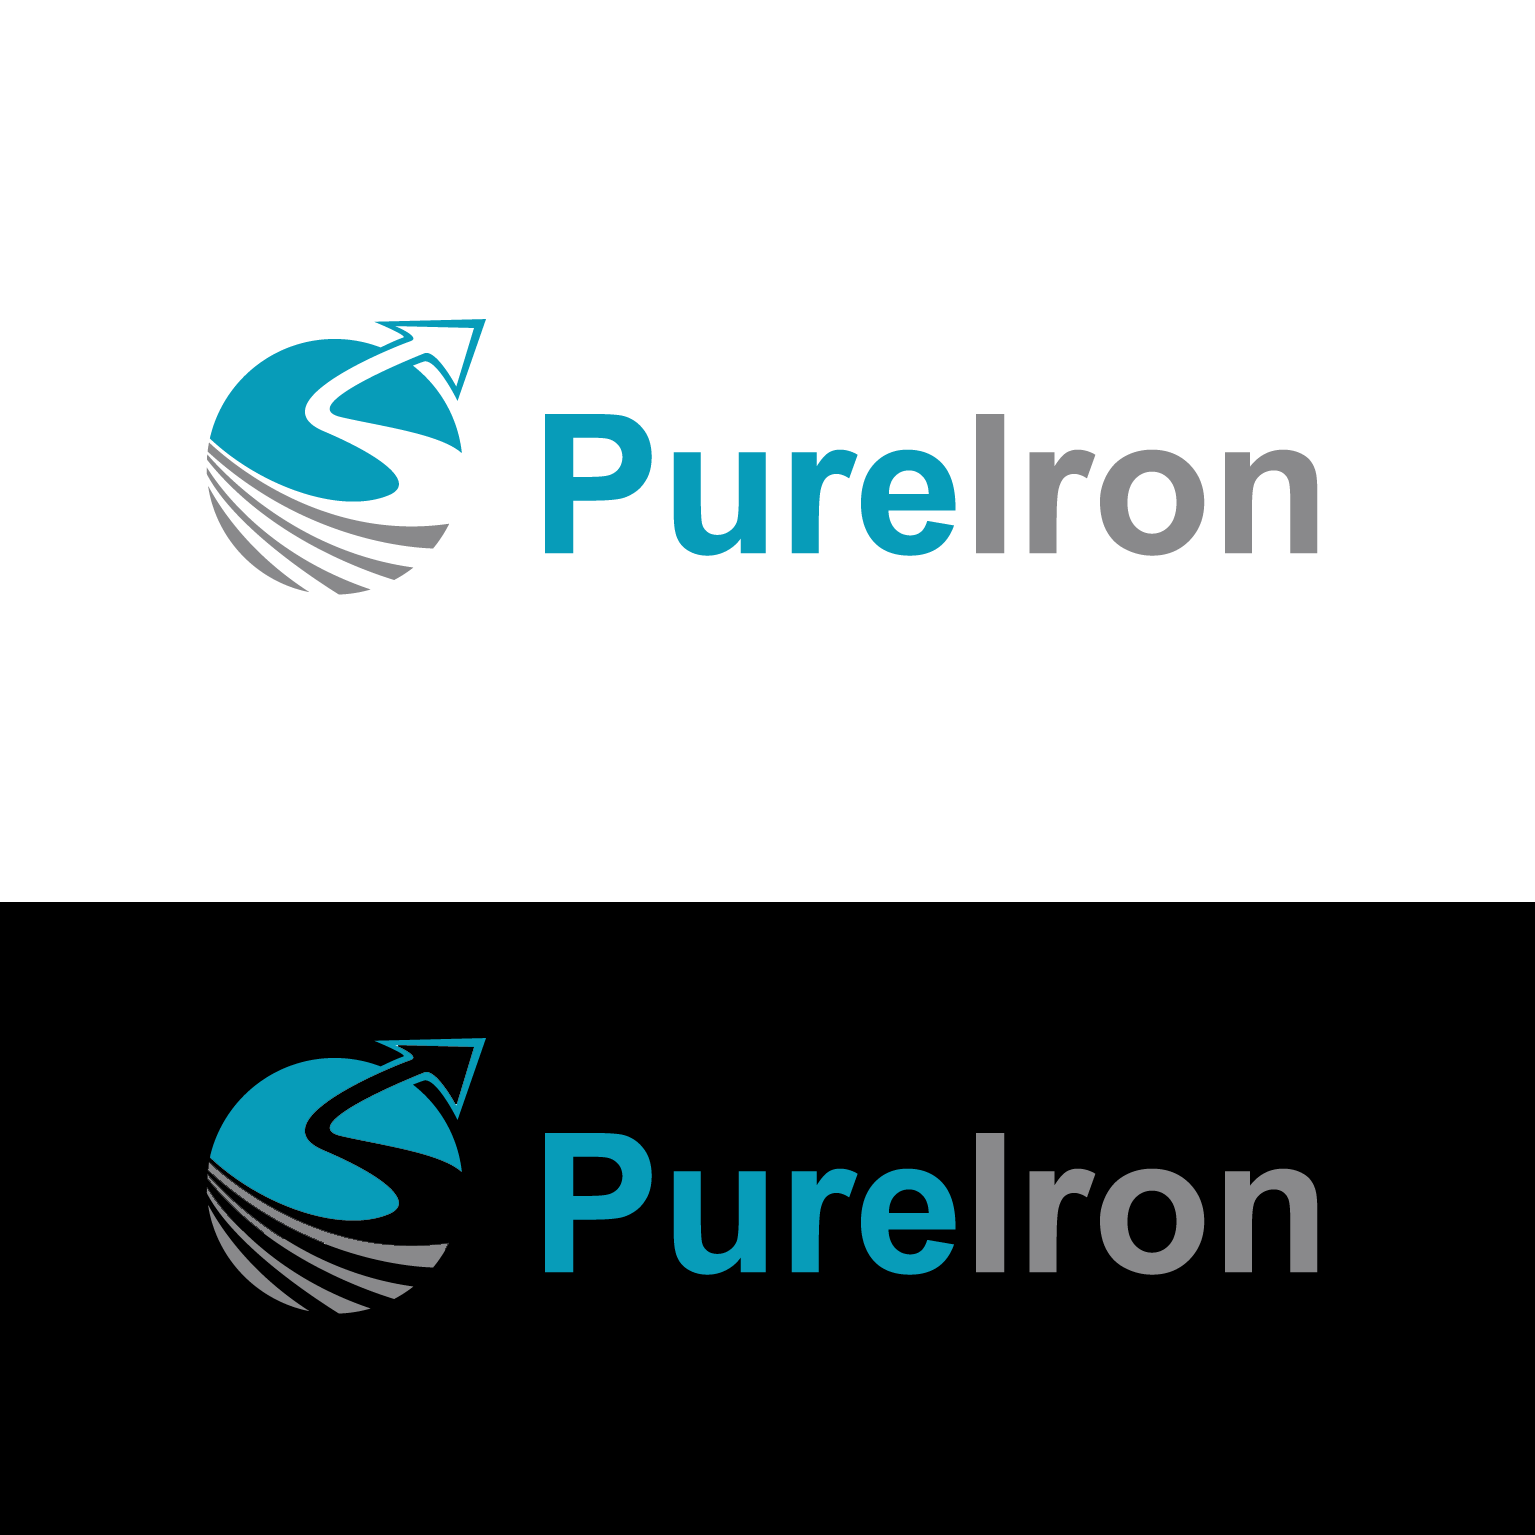 Logo Design by luna - Entry No. 45 in the Logo Design Contest Fun Logo Design for Pure Iron.